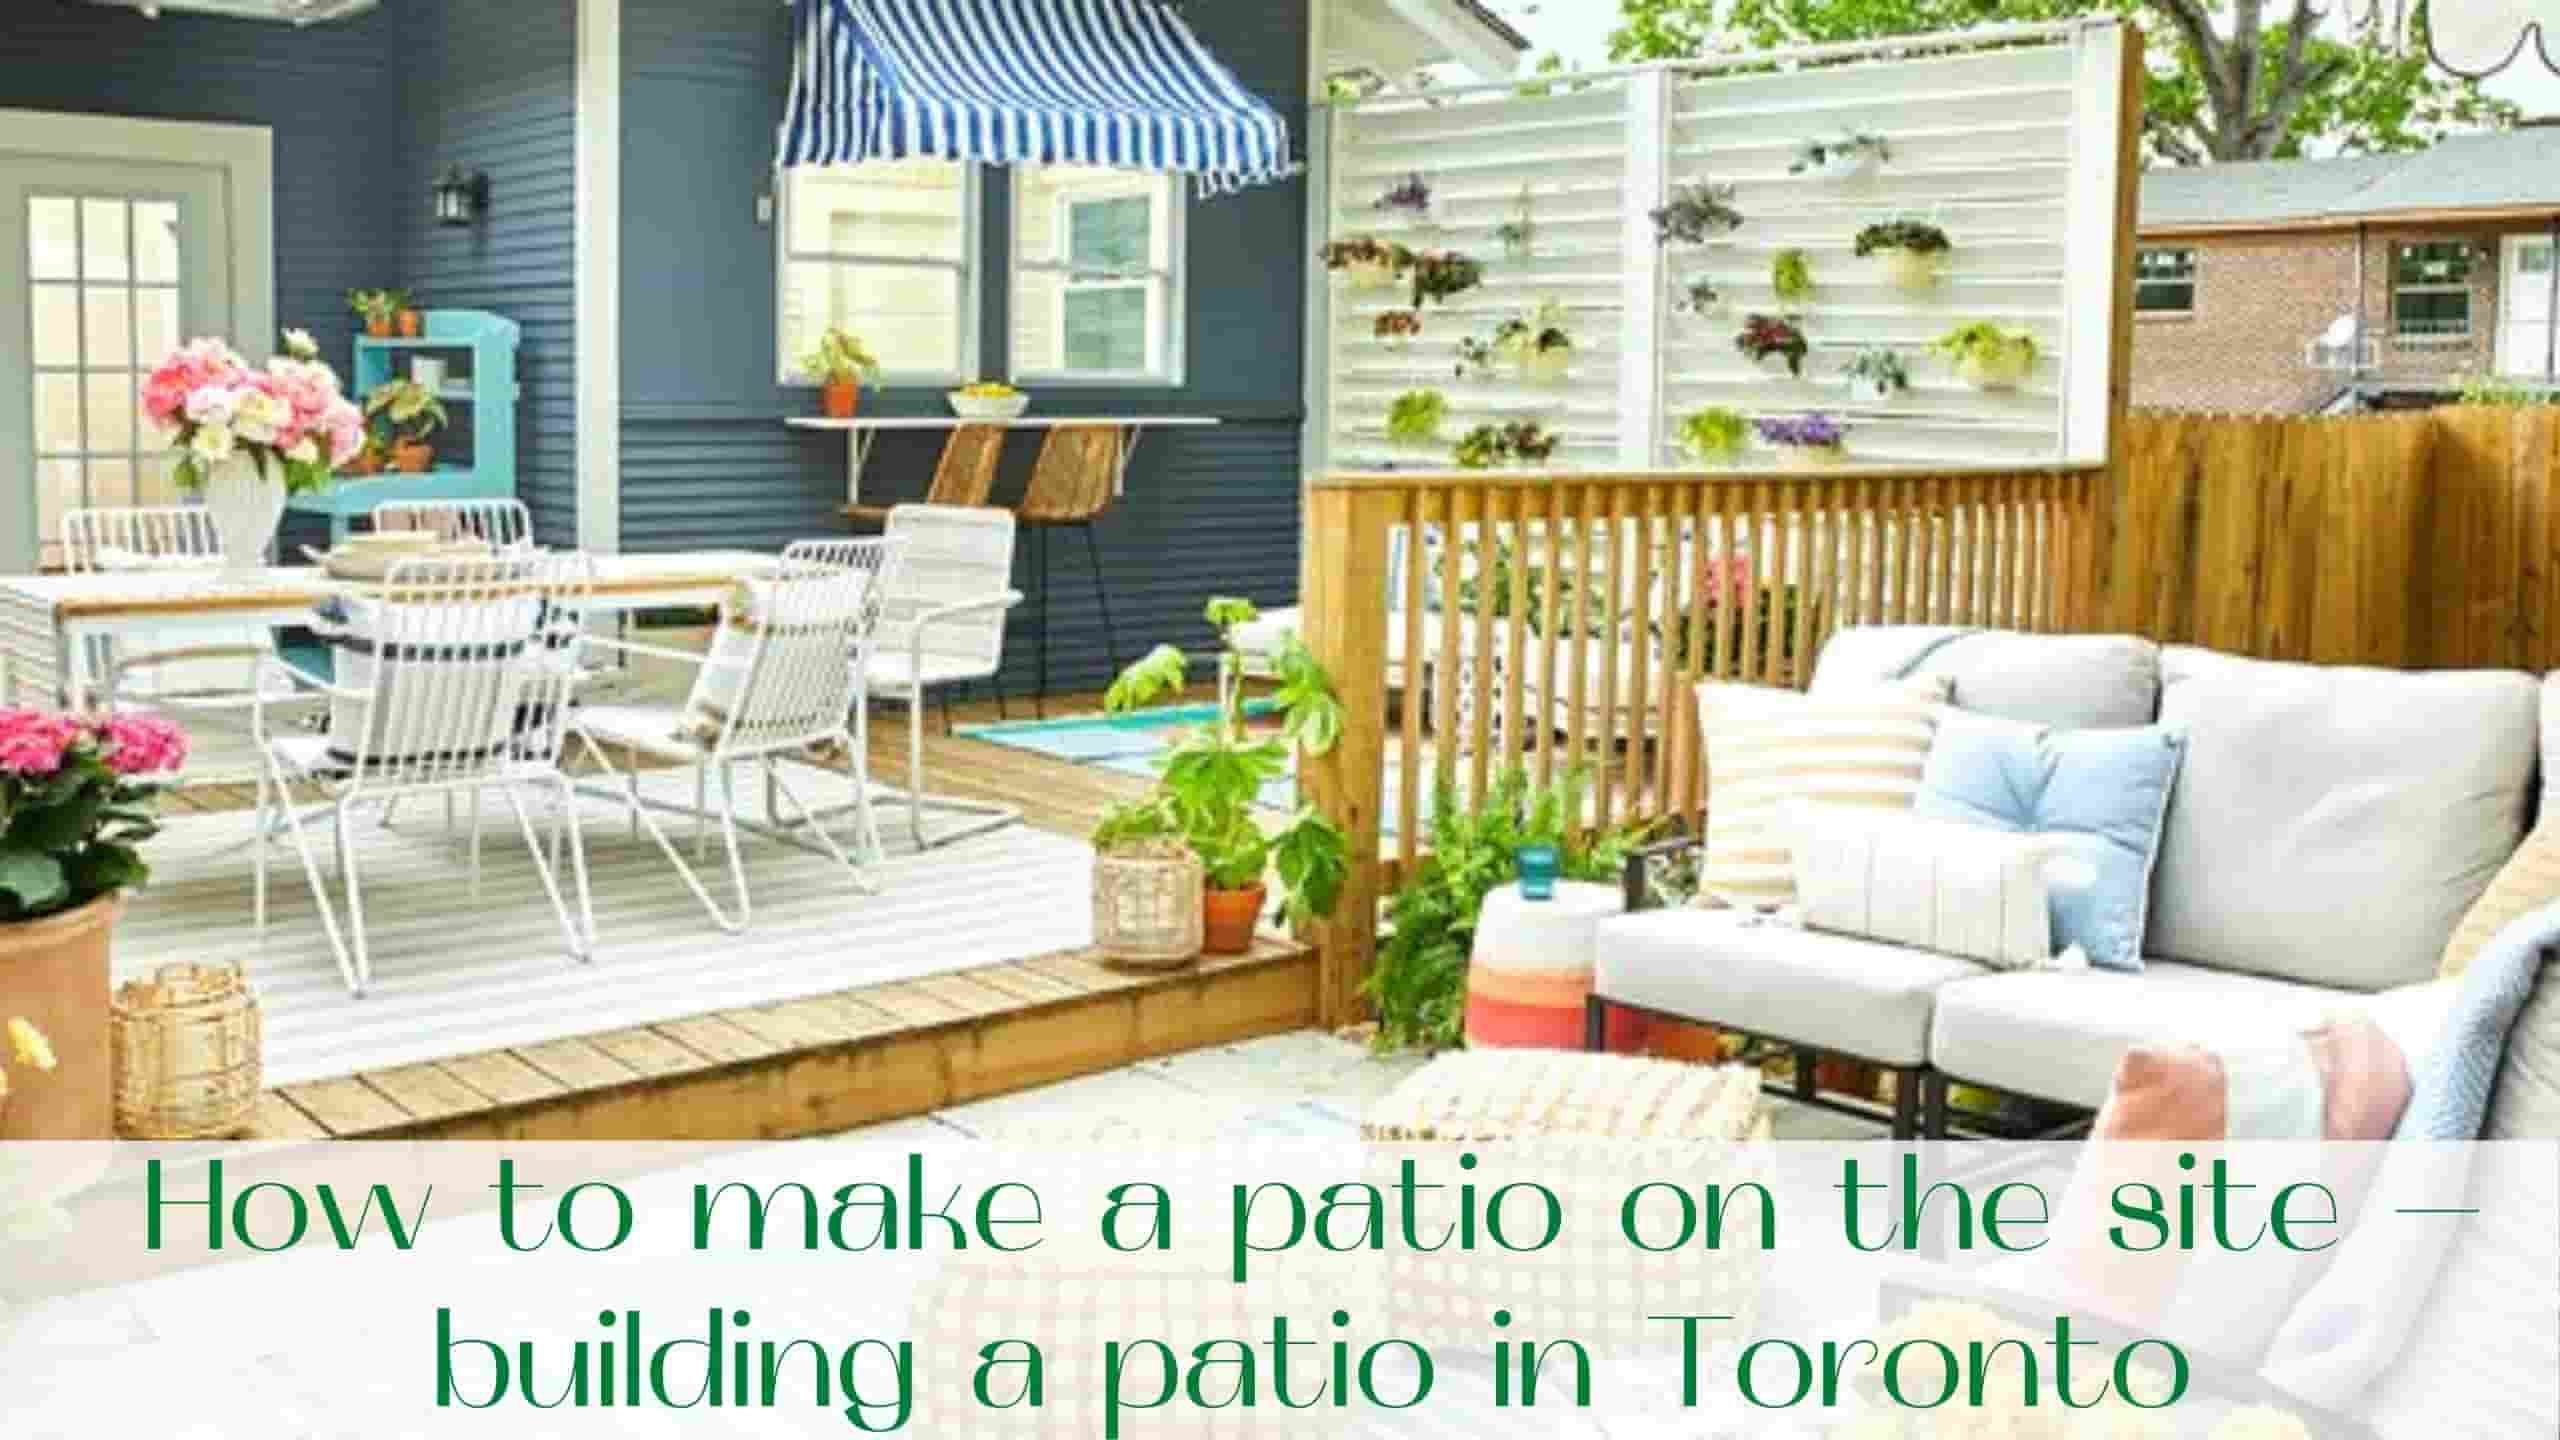 image-building-a-patio-in-toronto